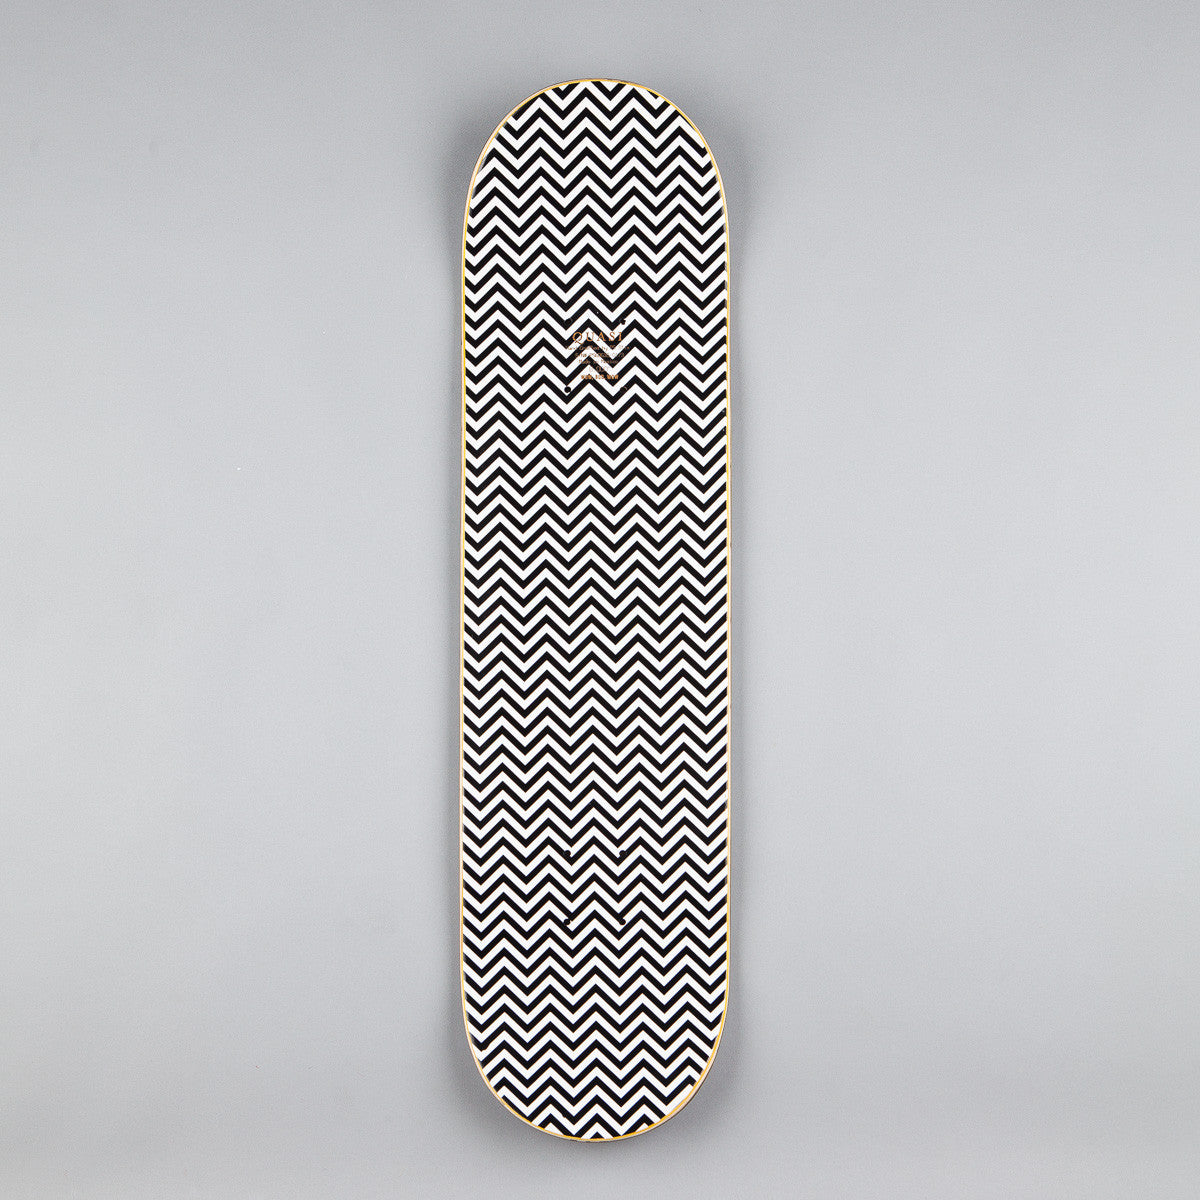 Quasi Blue Rose Deck - Black - 8""